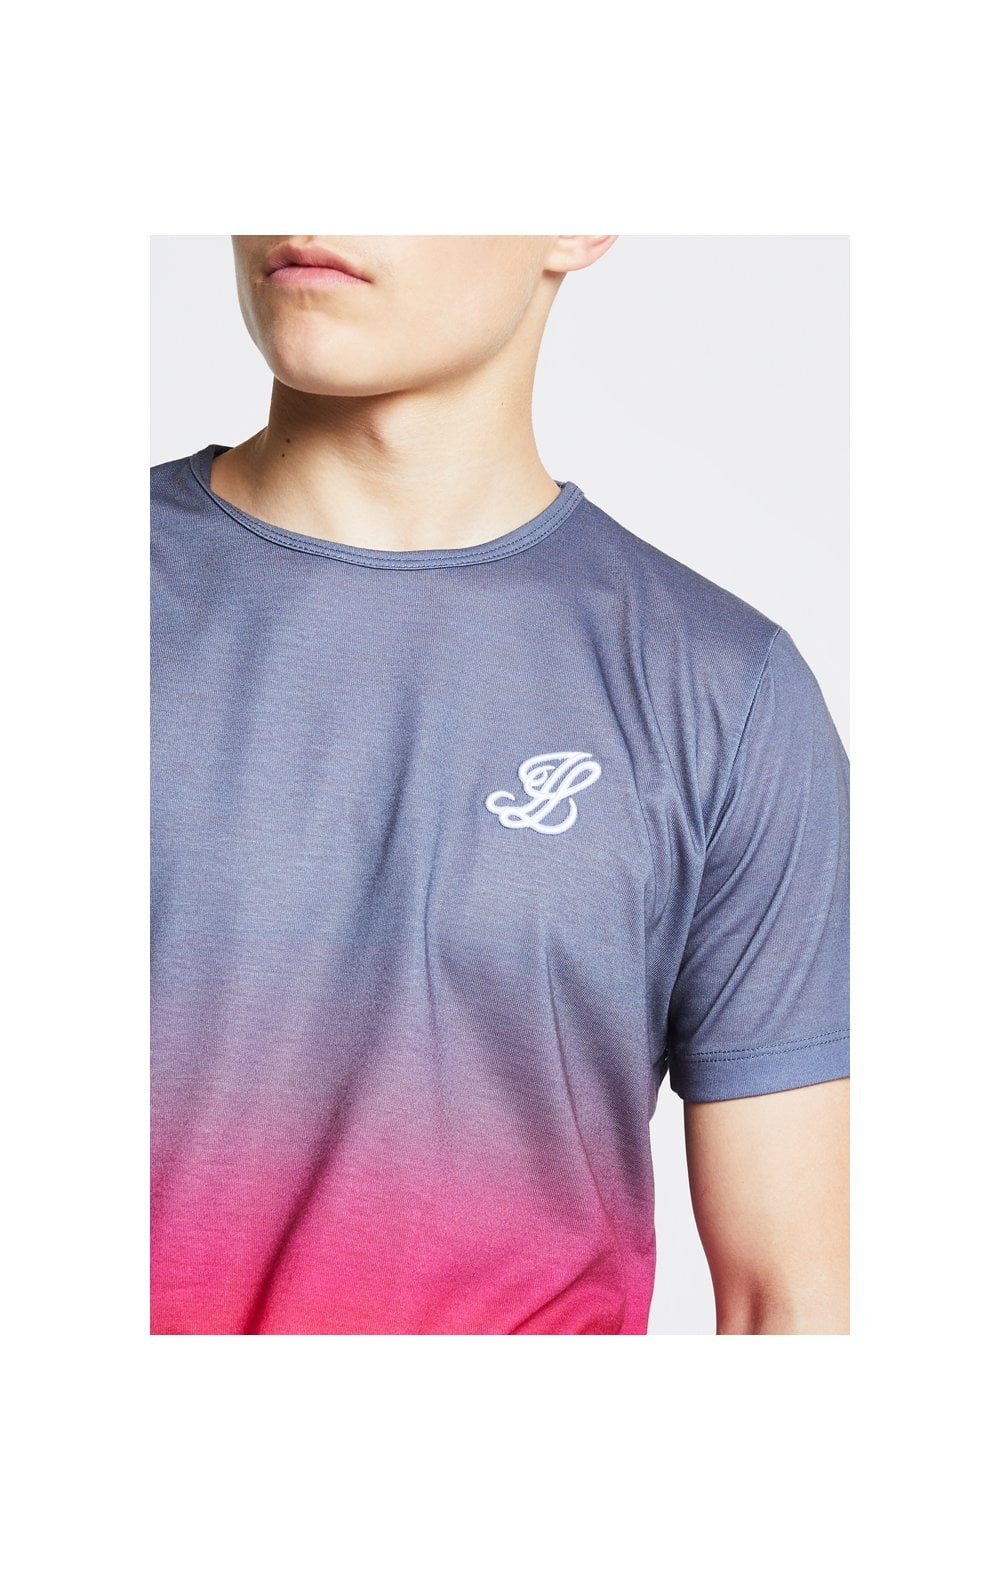 Load image into Gallery viewer, Illusive London Fade Tee - Grey & Pink